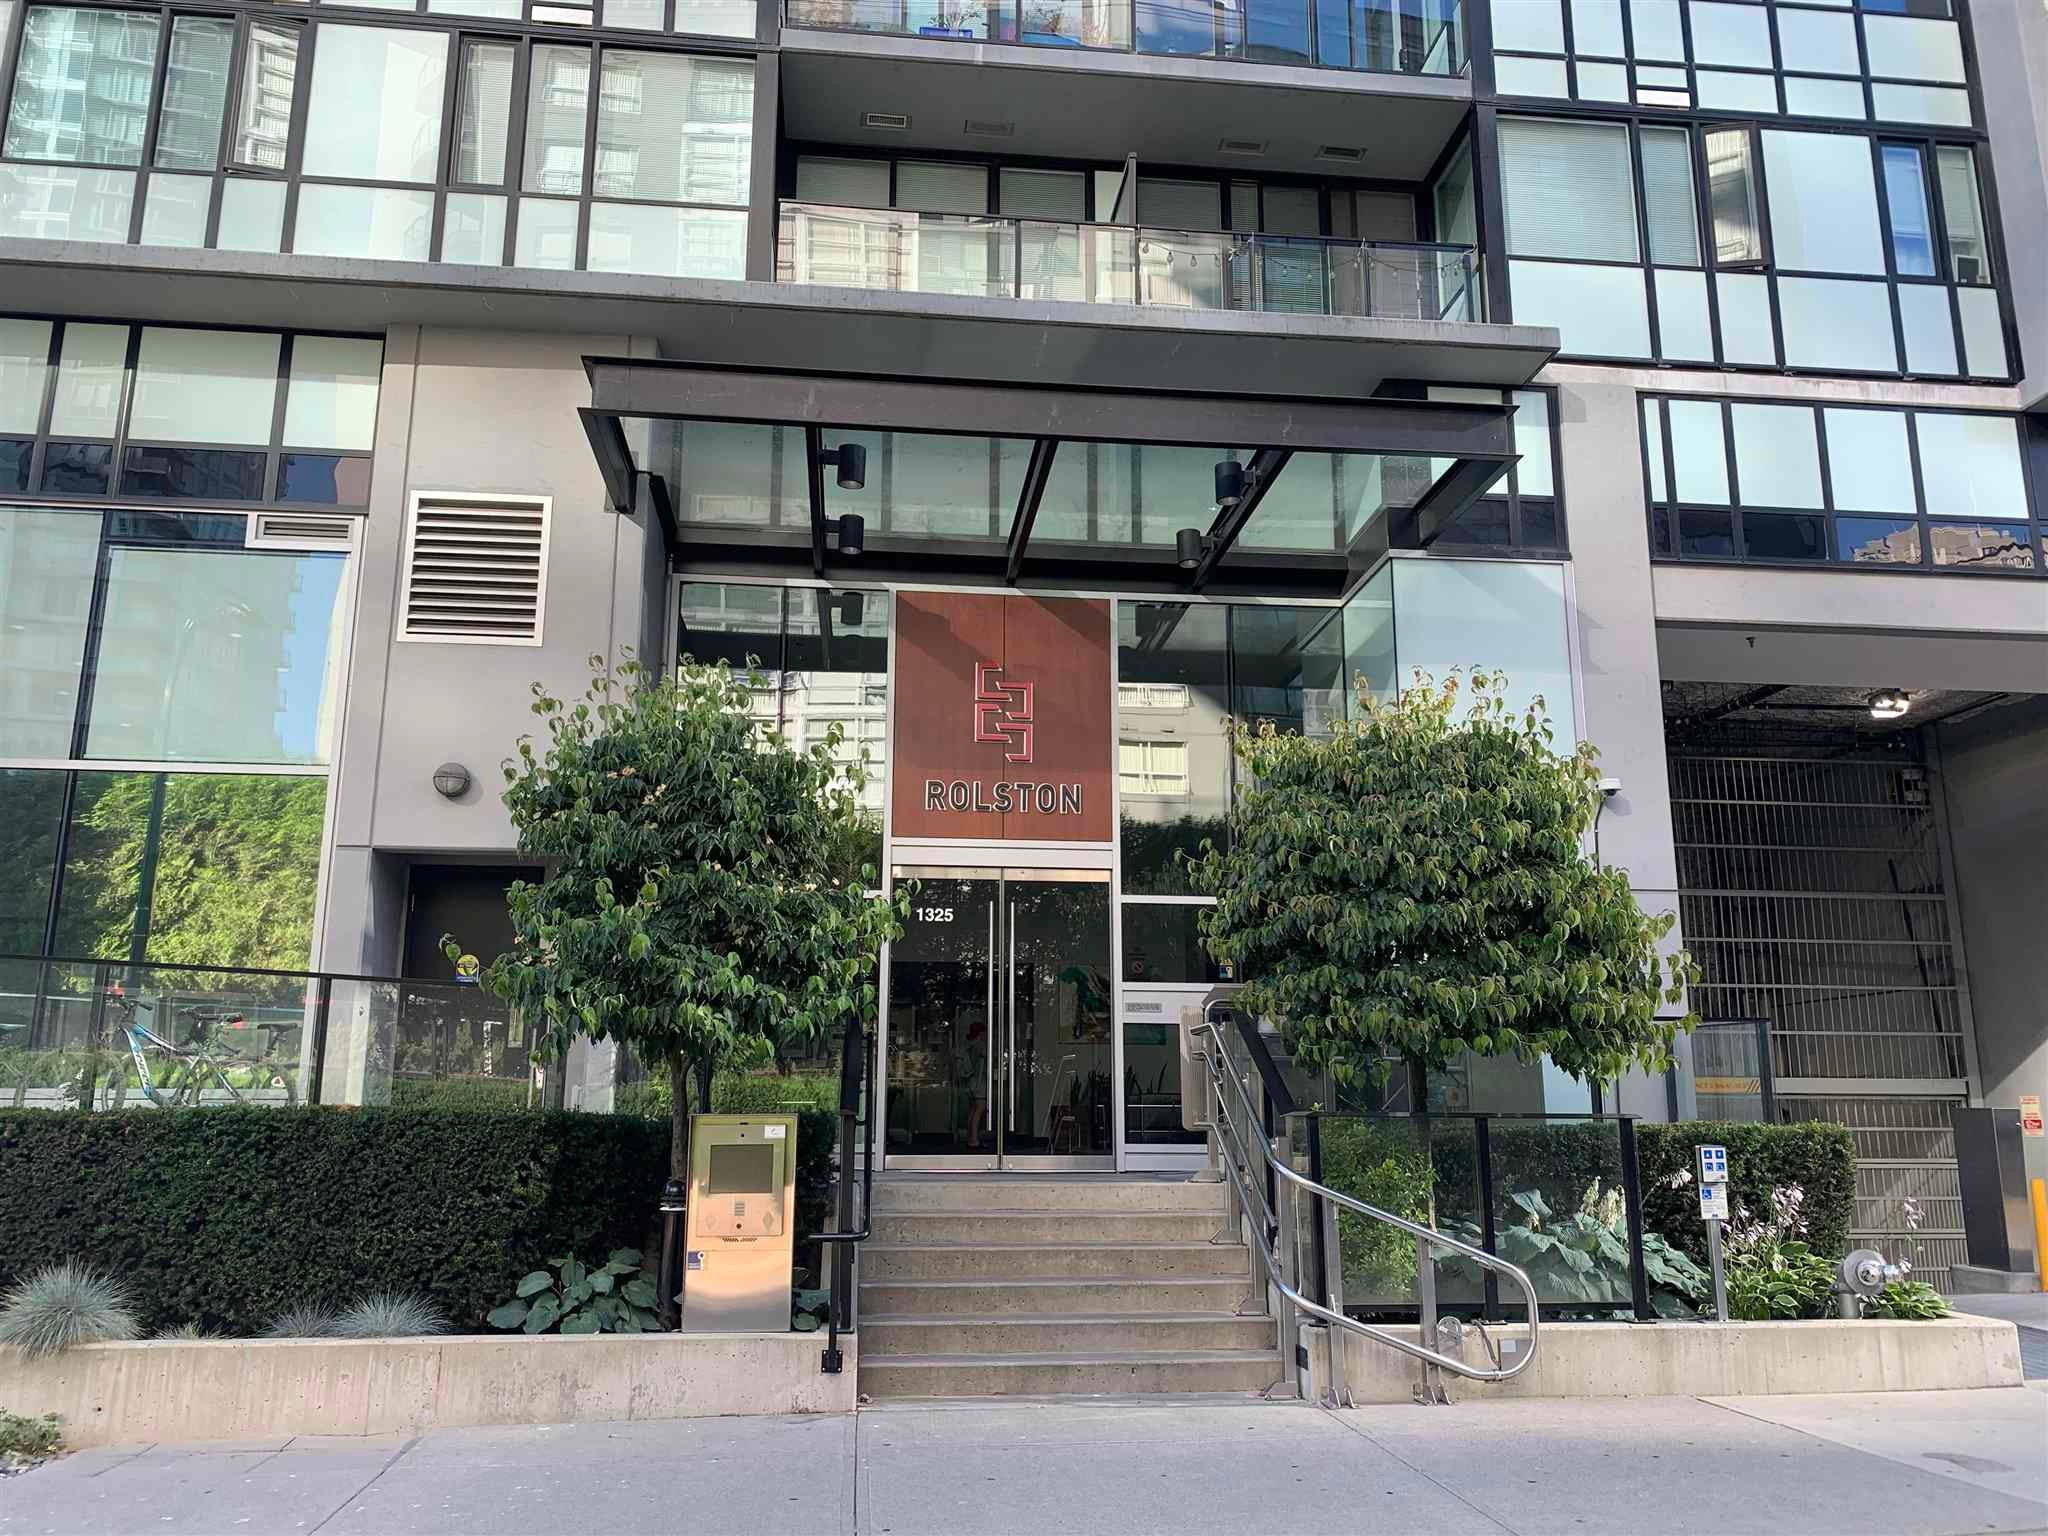 1307 1325 ROLSTON STREET - Downtown VW Apartment/Condo for sale, 1 Bedroom (R2603024) - #1